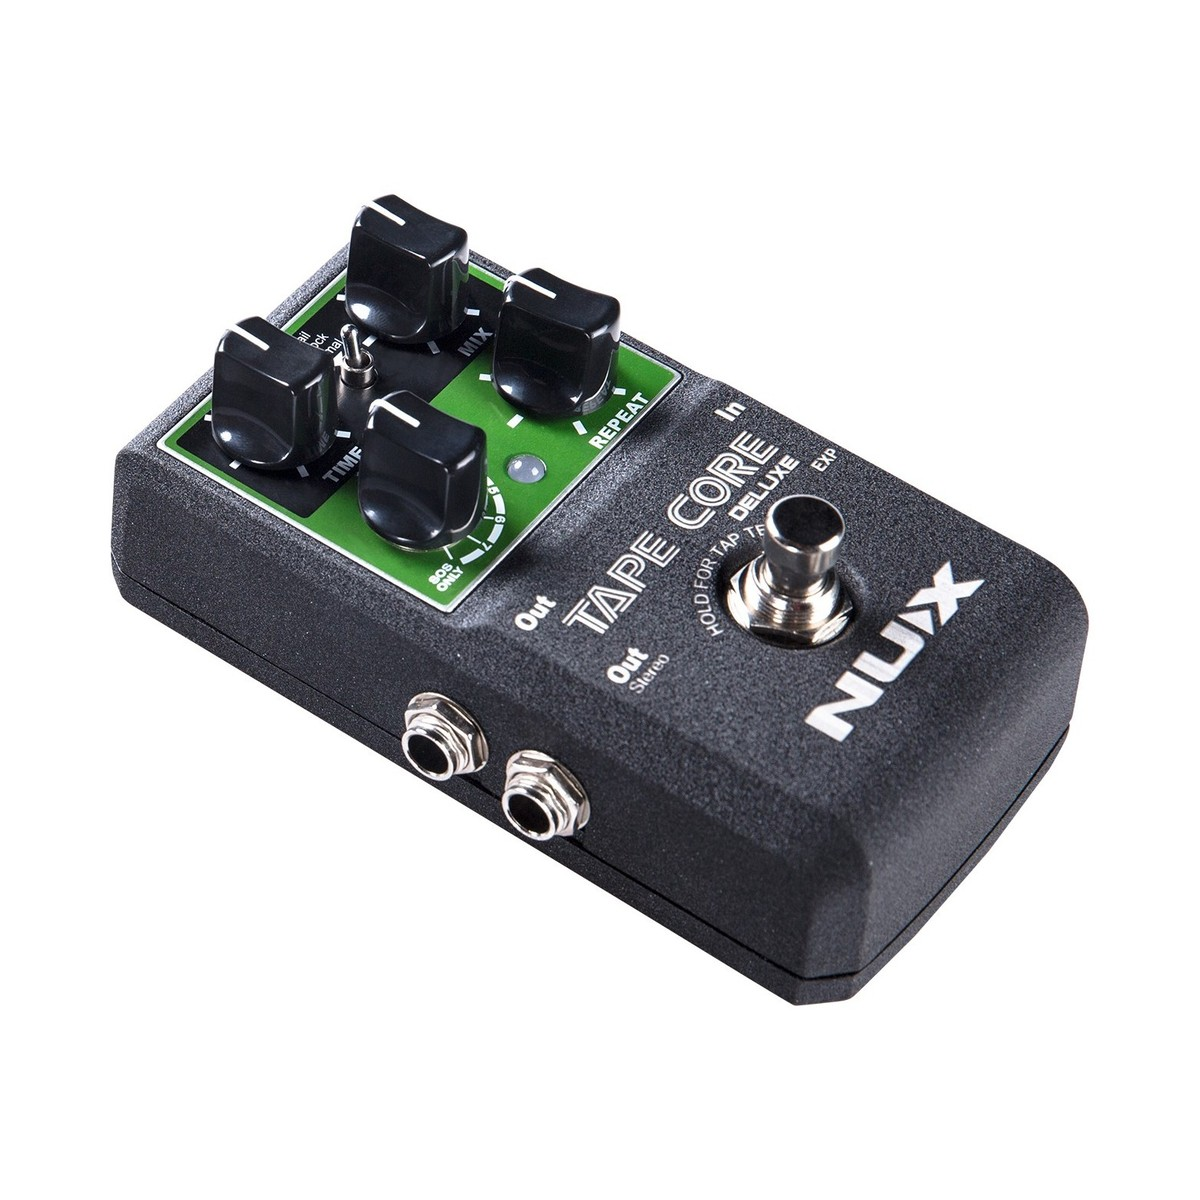 nux tape core deluxe guitar effects pedal at gear4music. Black Bedroom Furniture Sets. Home Design Ideas